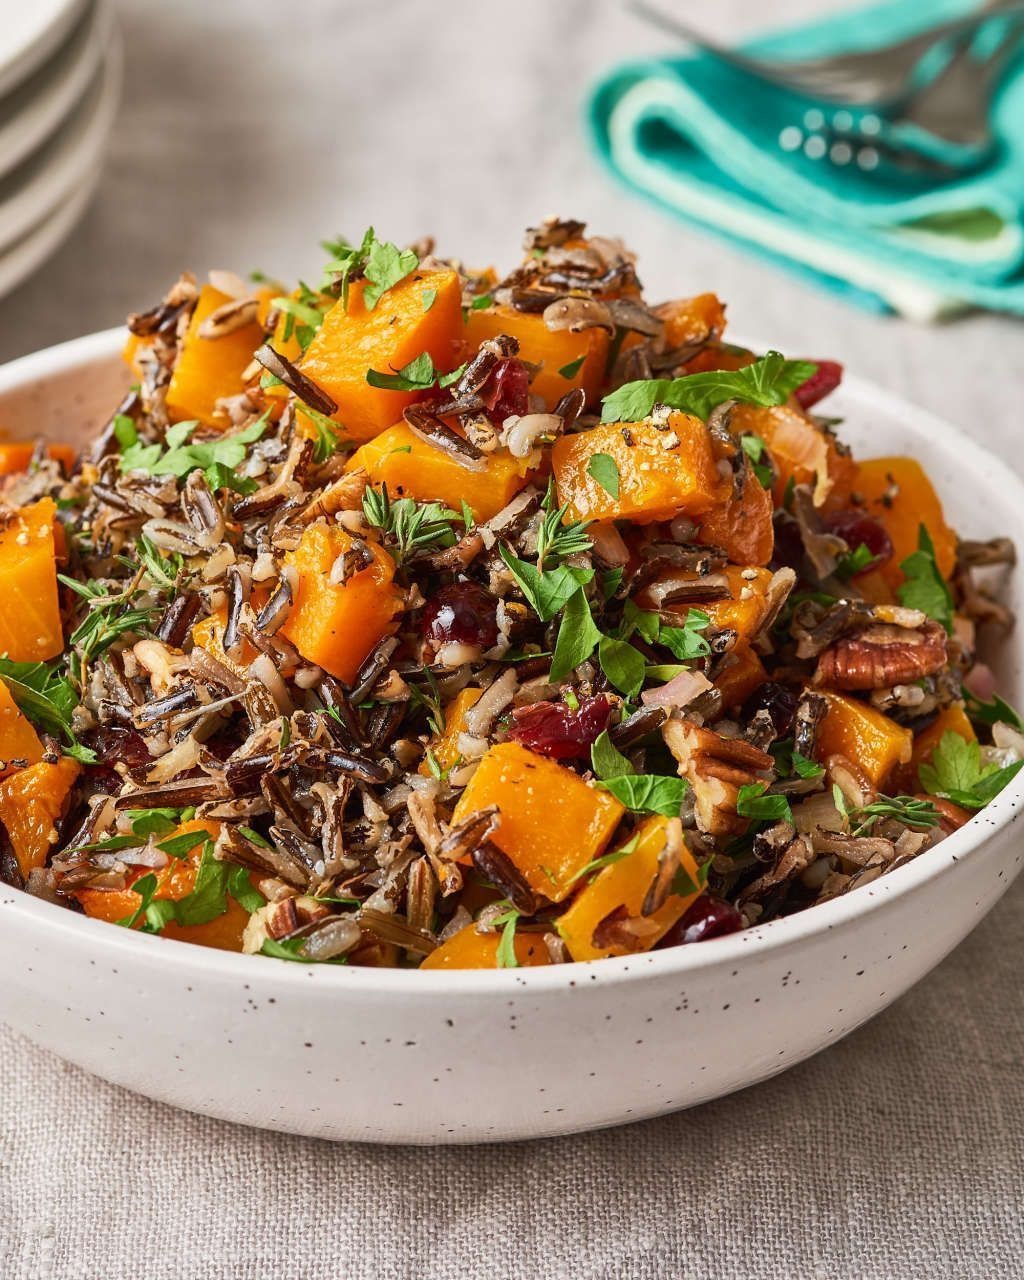 Wild Rice Pilaf with Squash, Pecans, and Cranberries #easyricepilaf Recipe: Wild Rice Pilaf with Squash, Pecans, and Cranberries — Recipes from The Kitchn #easyricepilaf Wild Rice Pilaf with Squash, Pecans, and Cranberries #easyricepilaf Recipe: Wild Rice Pilaf with Squash, Pecans, and Cranberries — Recipes from The Kitchn #easyricepilaf Wild Rice Pilaf with Squash, Pecans, and Cranberries #easyricepilaf Recipe: Wild Rice Pilaf with Squash, Pecans, and Cranberries — Recipes from The Kitchn #easyricepilaf